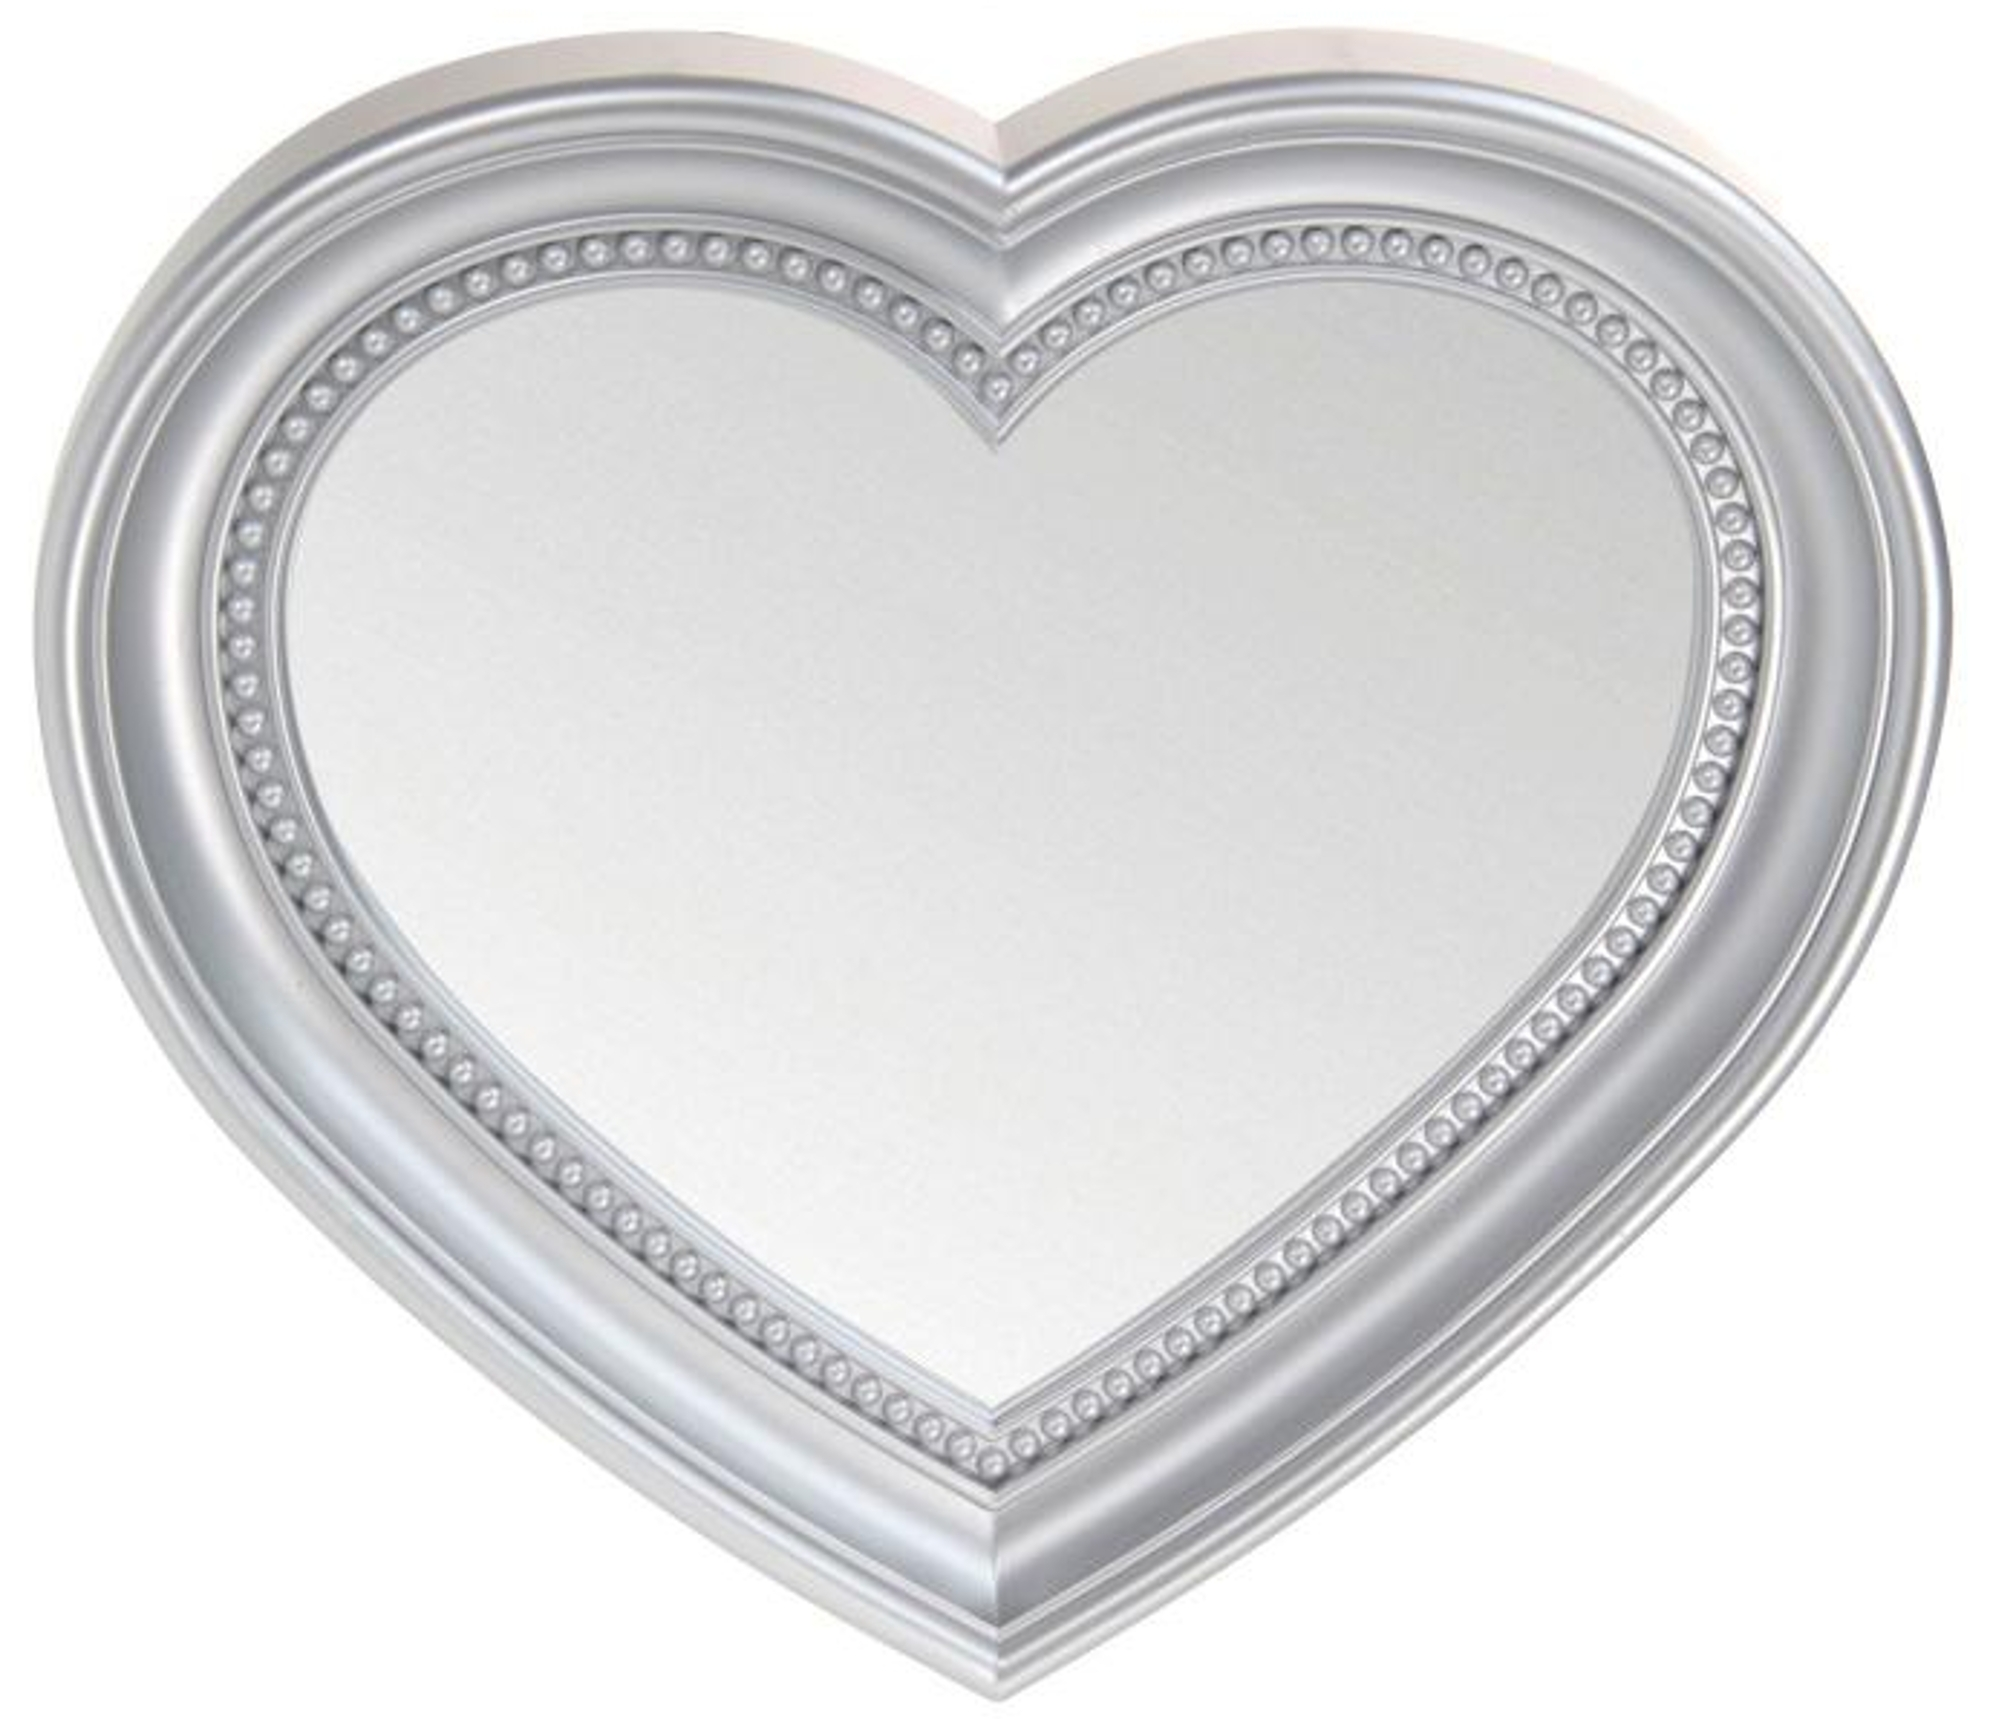 Heart Shaped Wall Hanging Mirror Silver 35cm